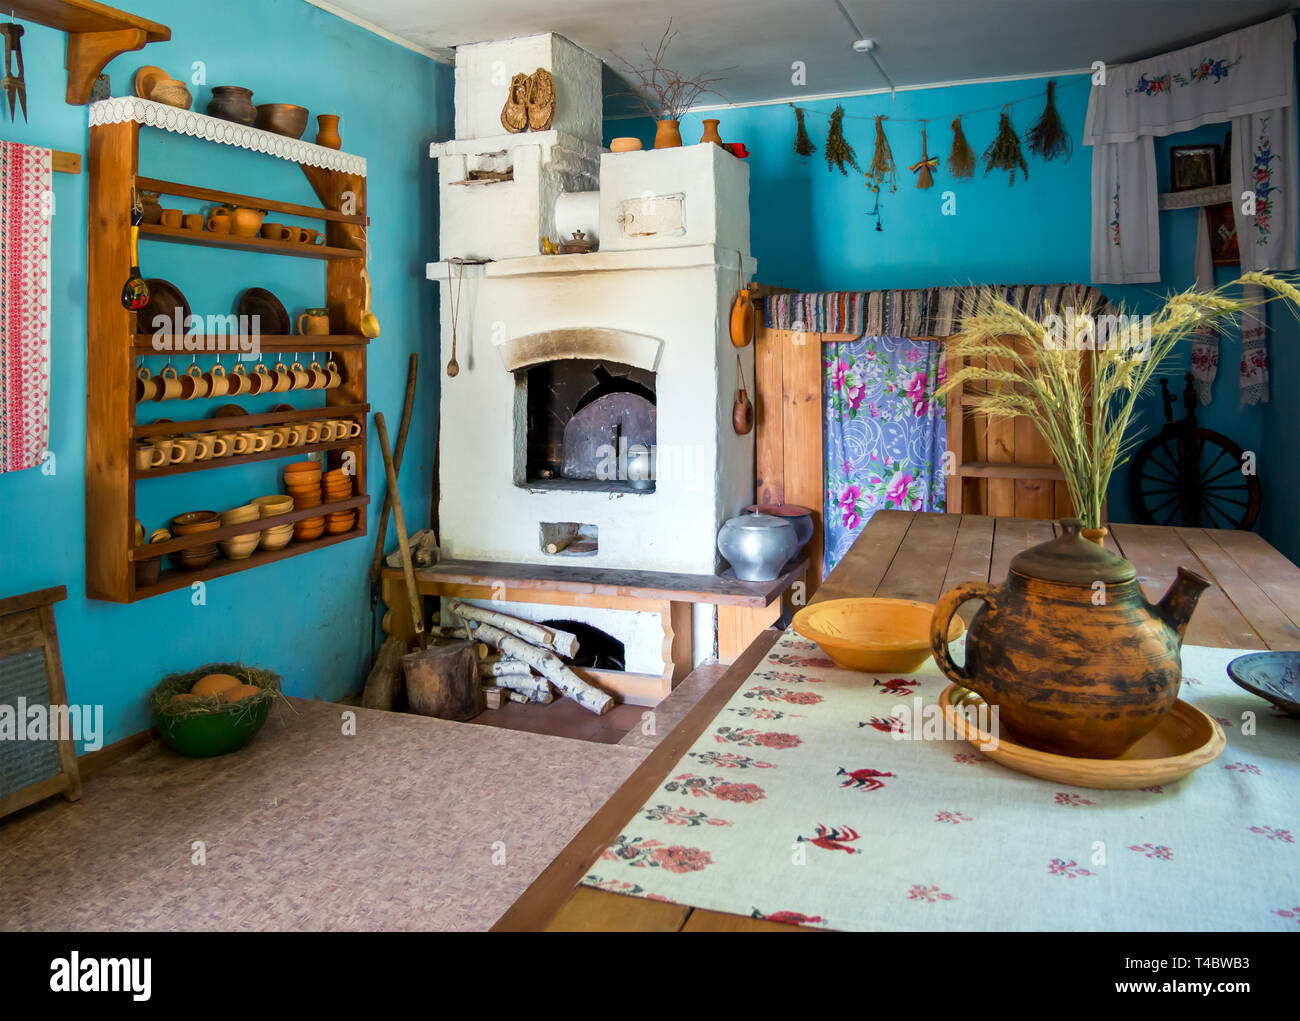 Zadonsk, Russia - August 28, 2018: Reconstruction of the Russian izba, Zadonsk Regional Museum, Zadonsk - Stock Image